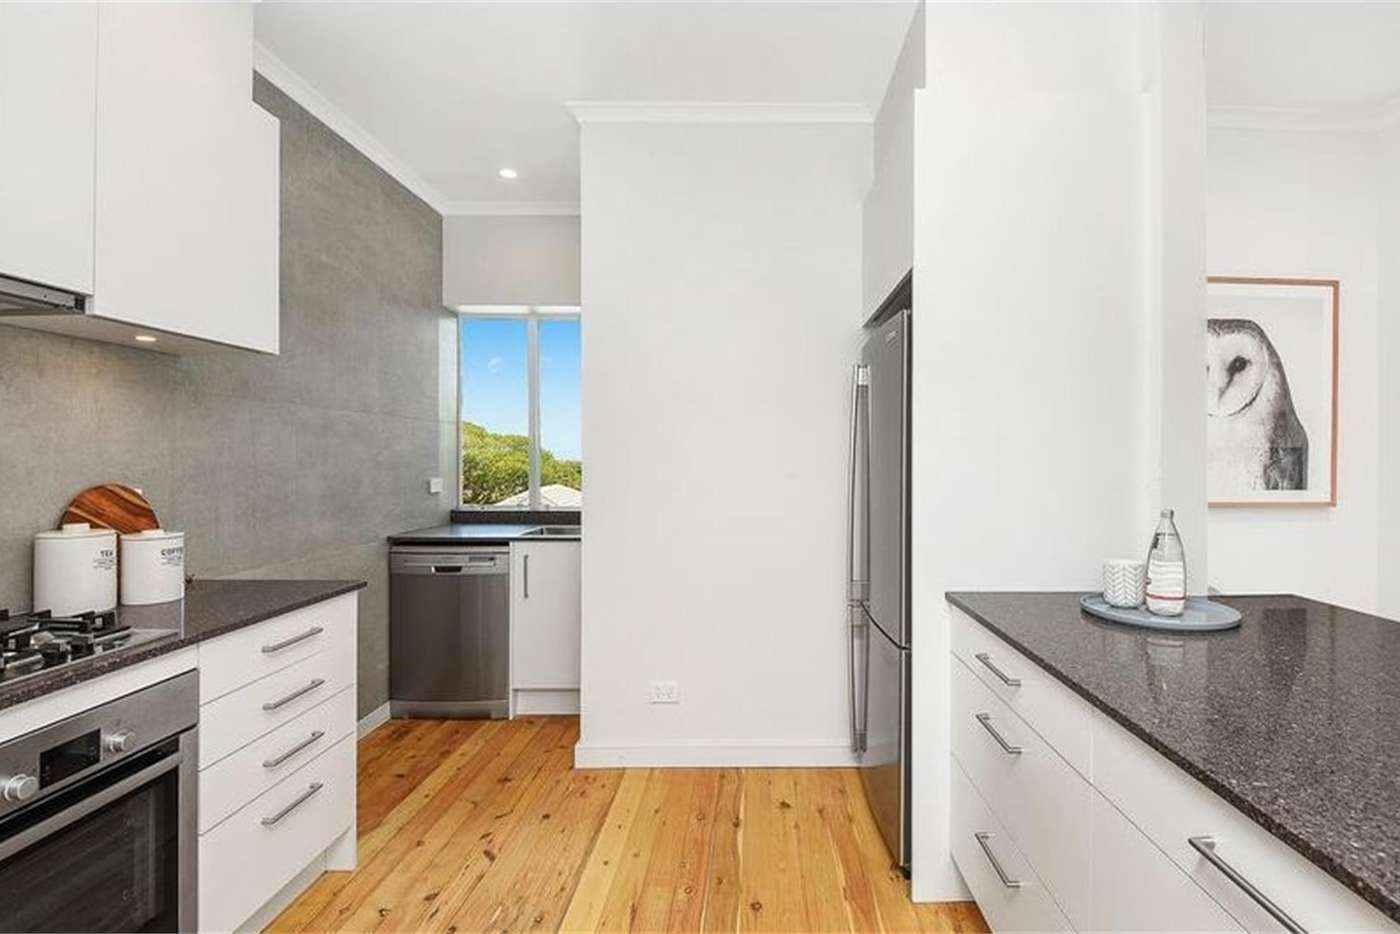 Fifth view of Homely apartment listing, 9/107 Alison Rd, Randwick NSW 2031